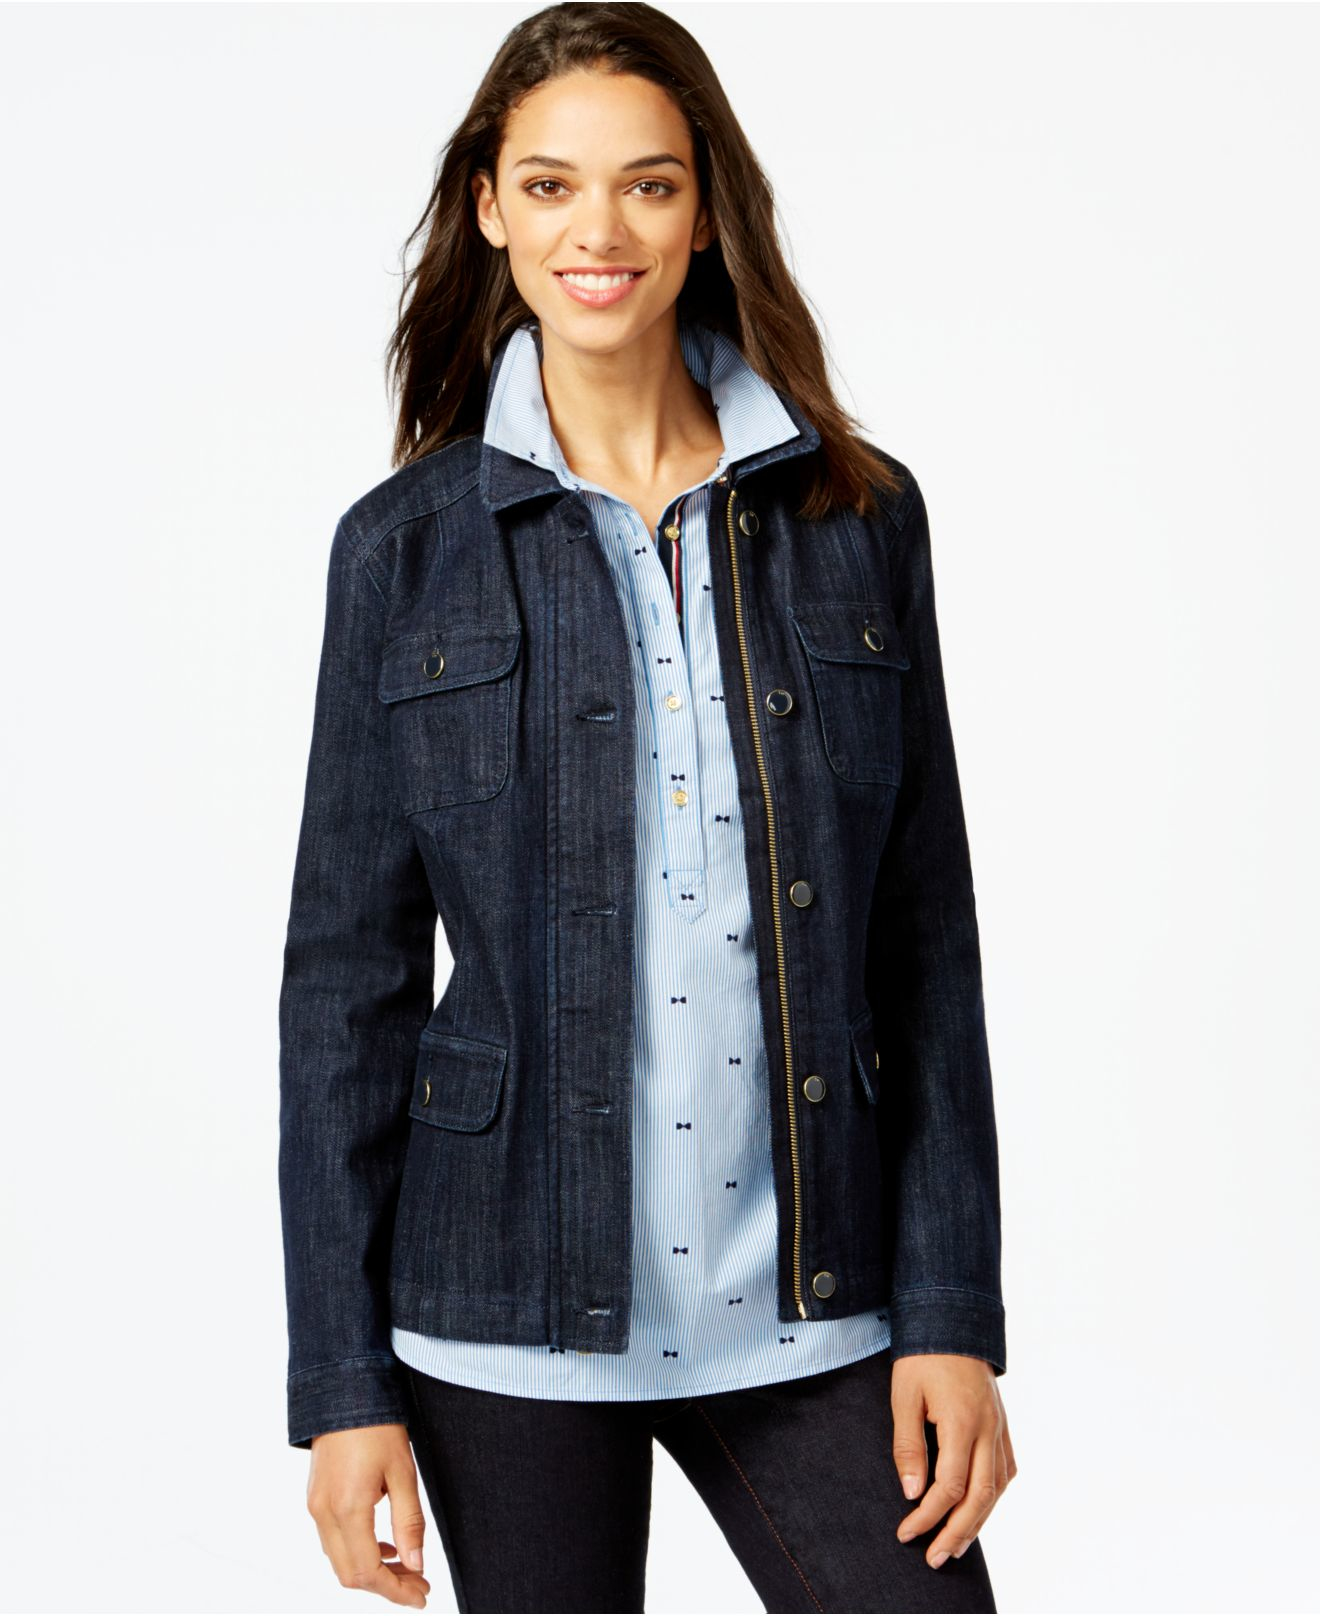 Lyst - Tommy Hilfiger Zip-front Denim Jacket in Blue